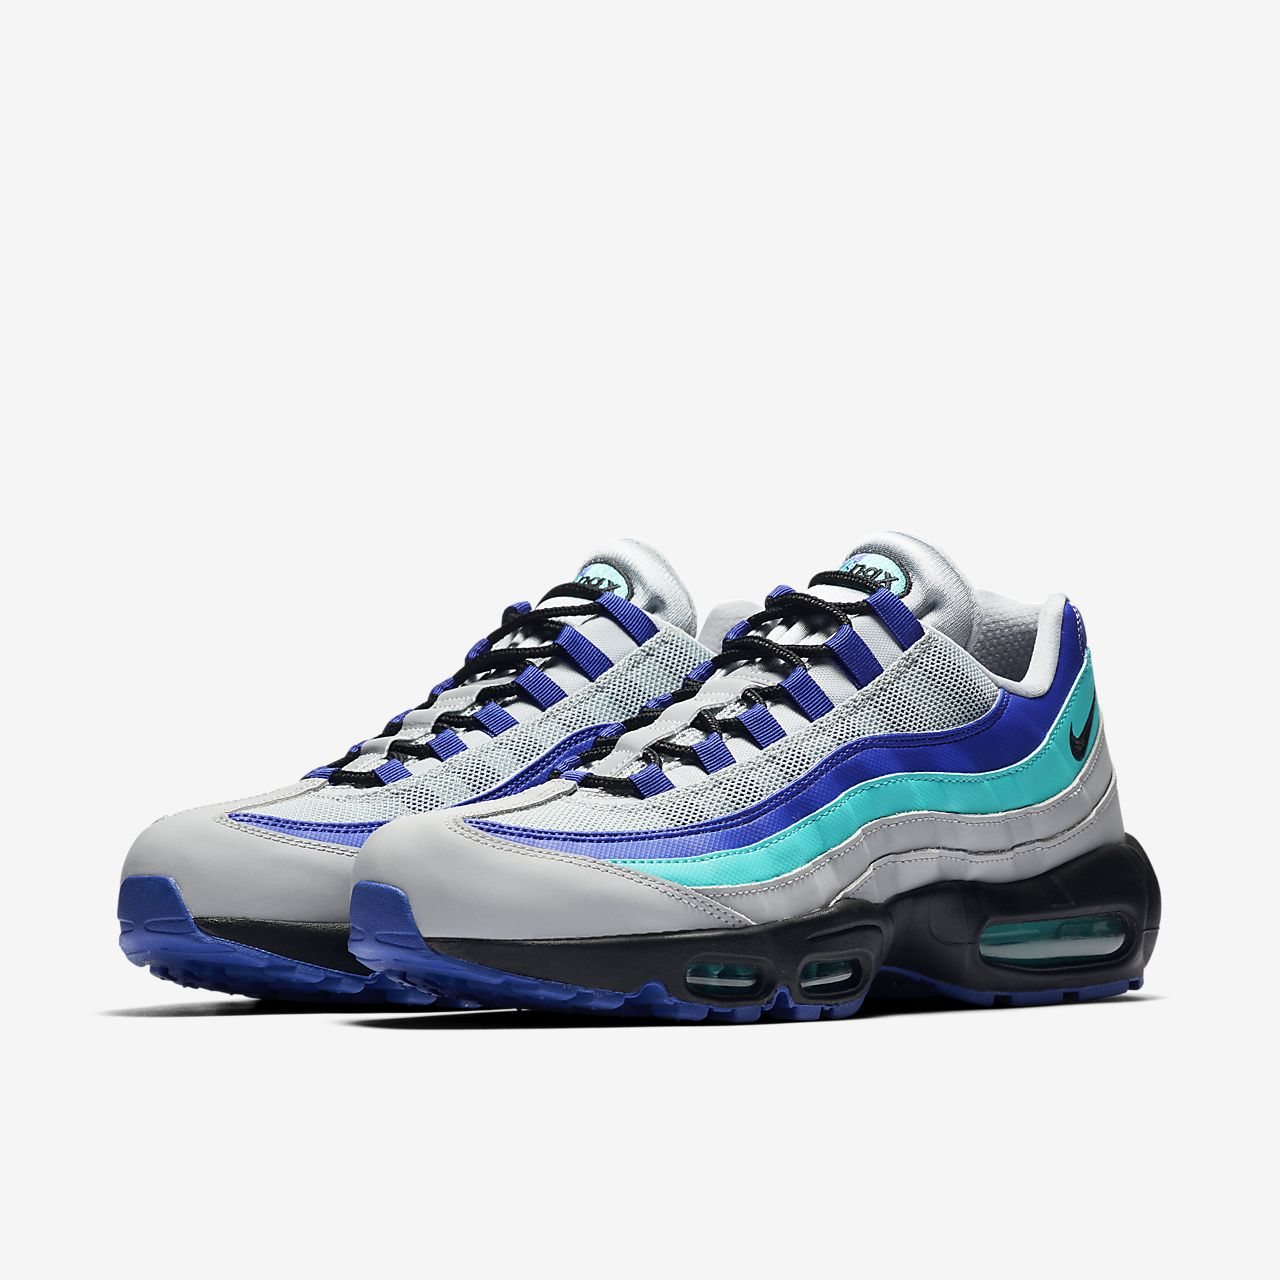 watch 3af10 e2403 ... Nike Air Max 95 OG Shoe